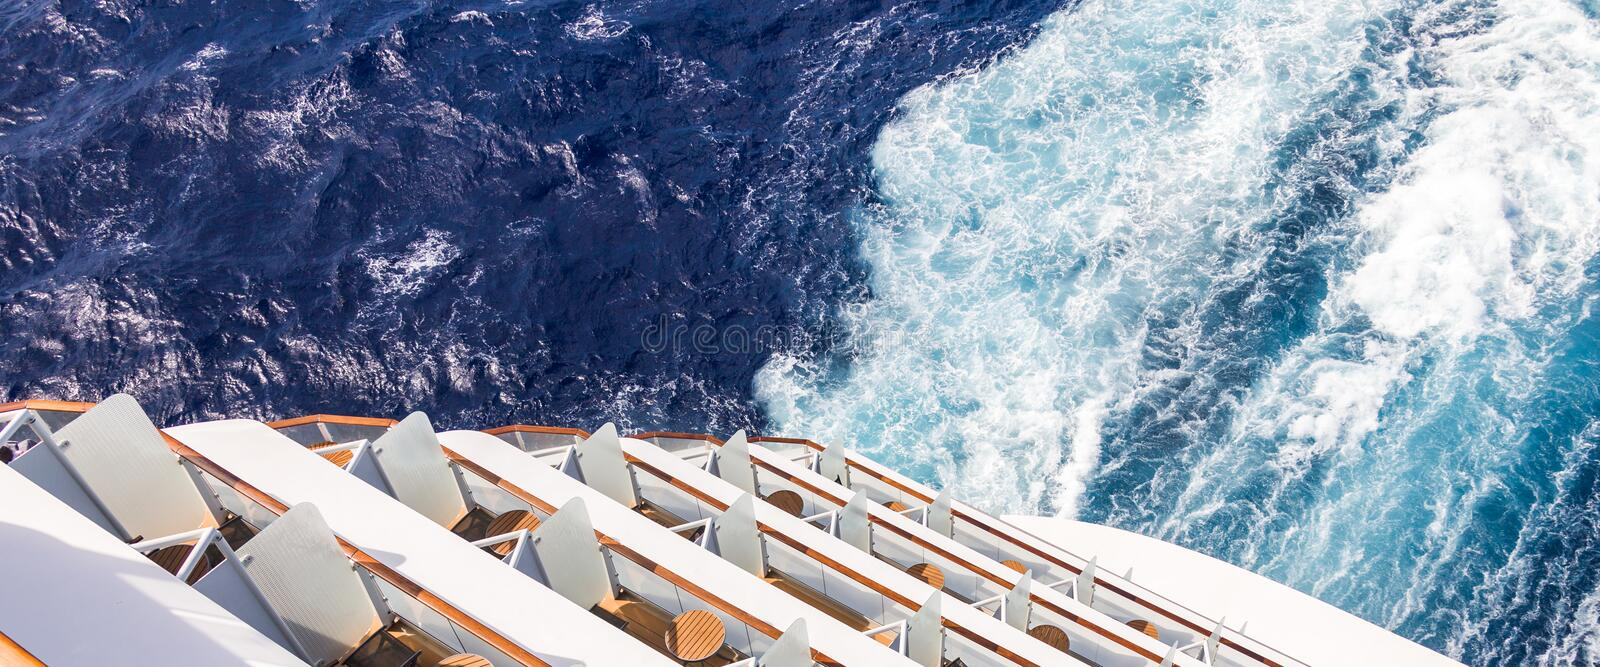 Balconies on a Cruise ship, decks with wake or trail. Balconies on a backof Cruise ship, decks with wake or trail on ocean surface stock photo